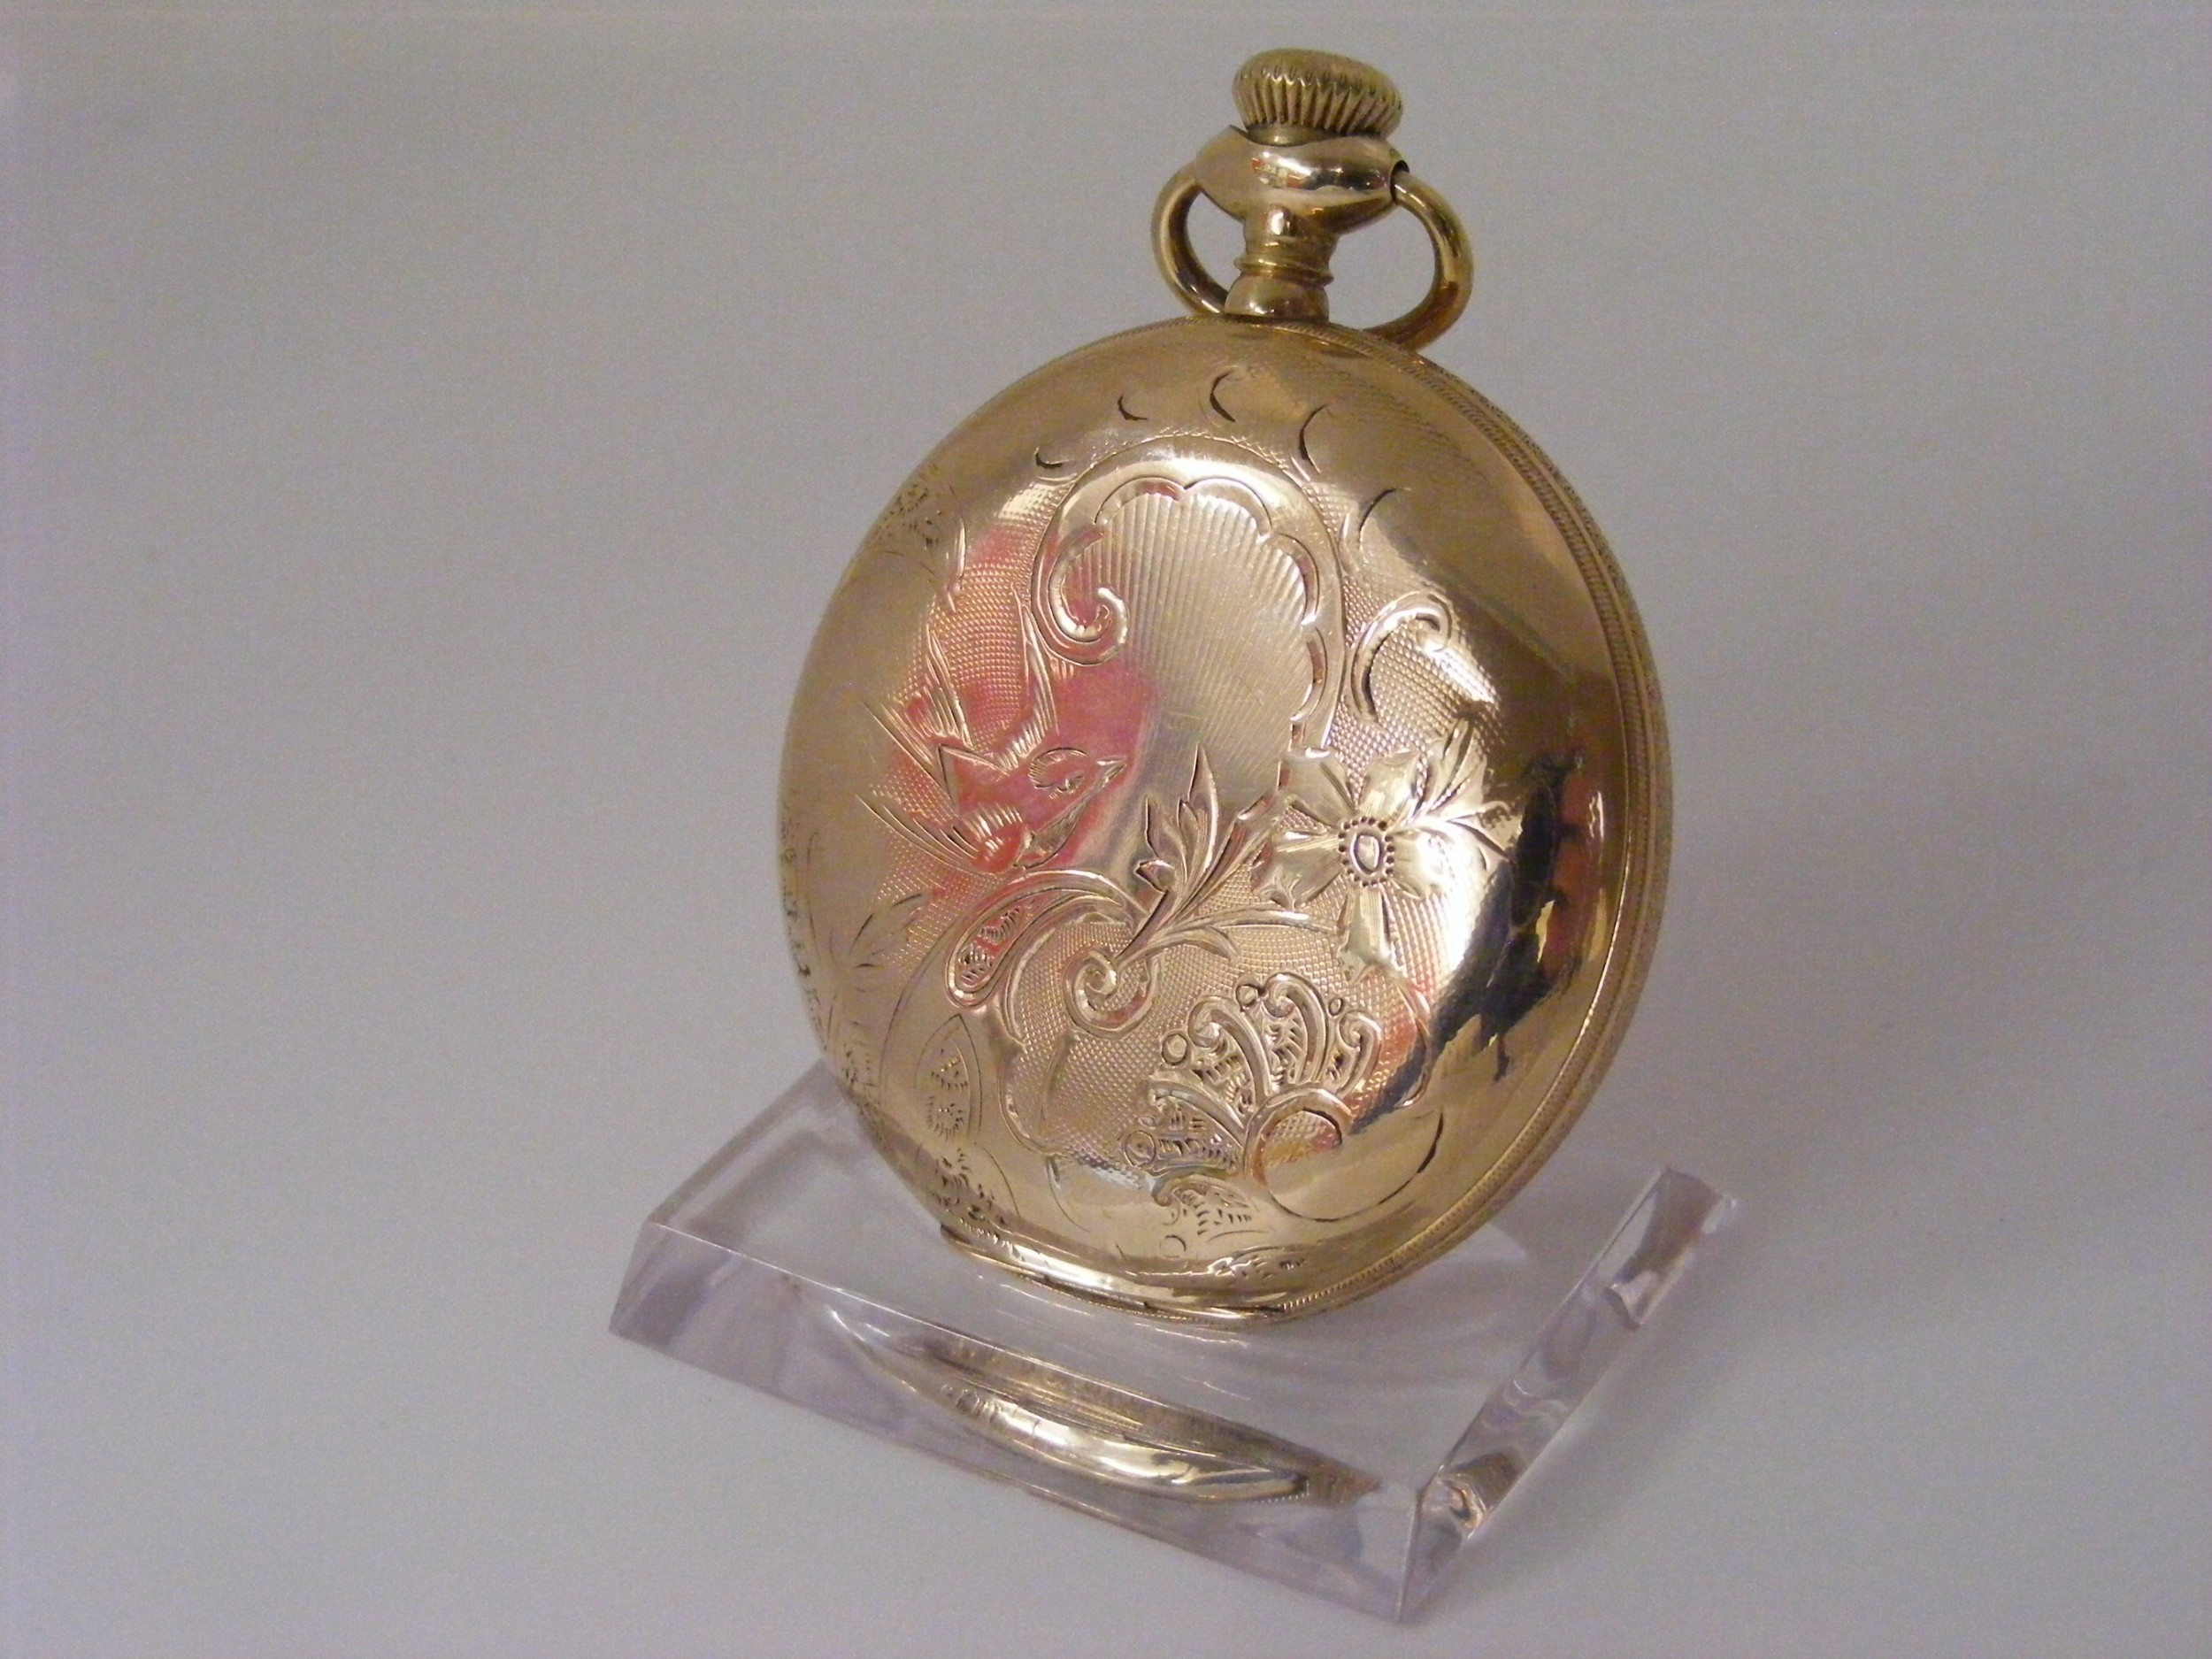 hamilton hunting case 17 jewel pocket watch immaculate serviced warranted